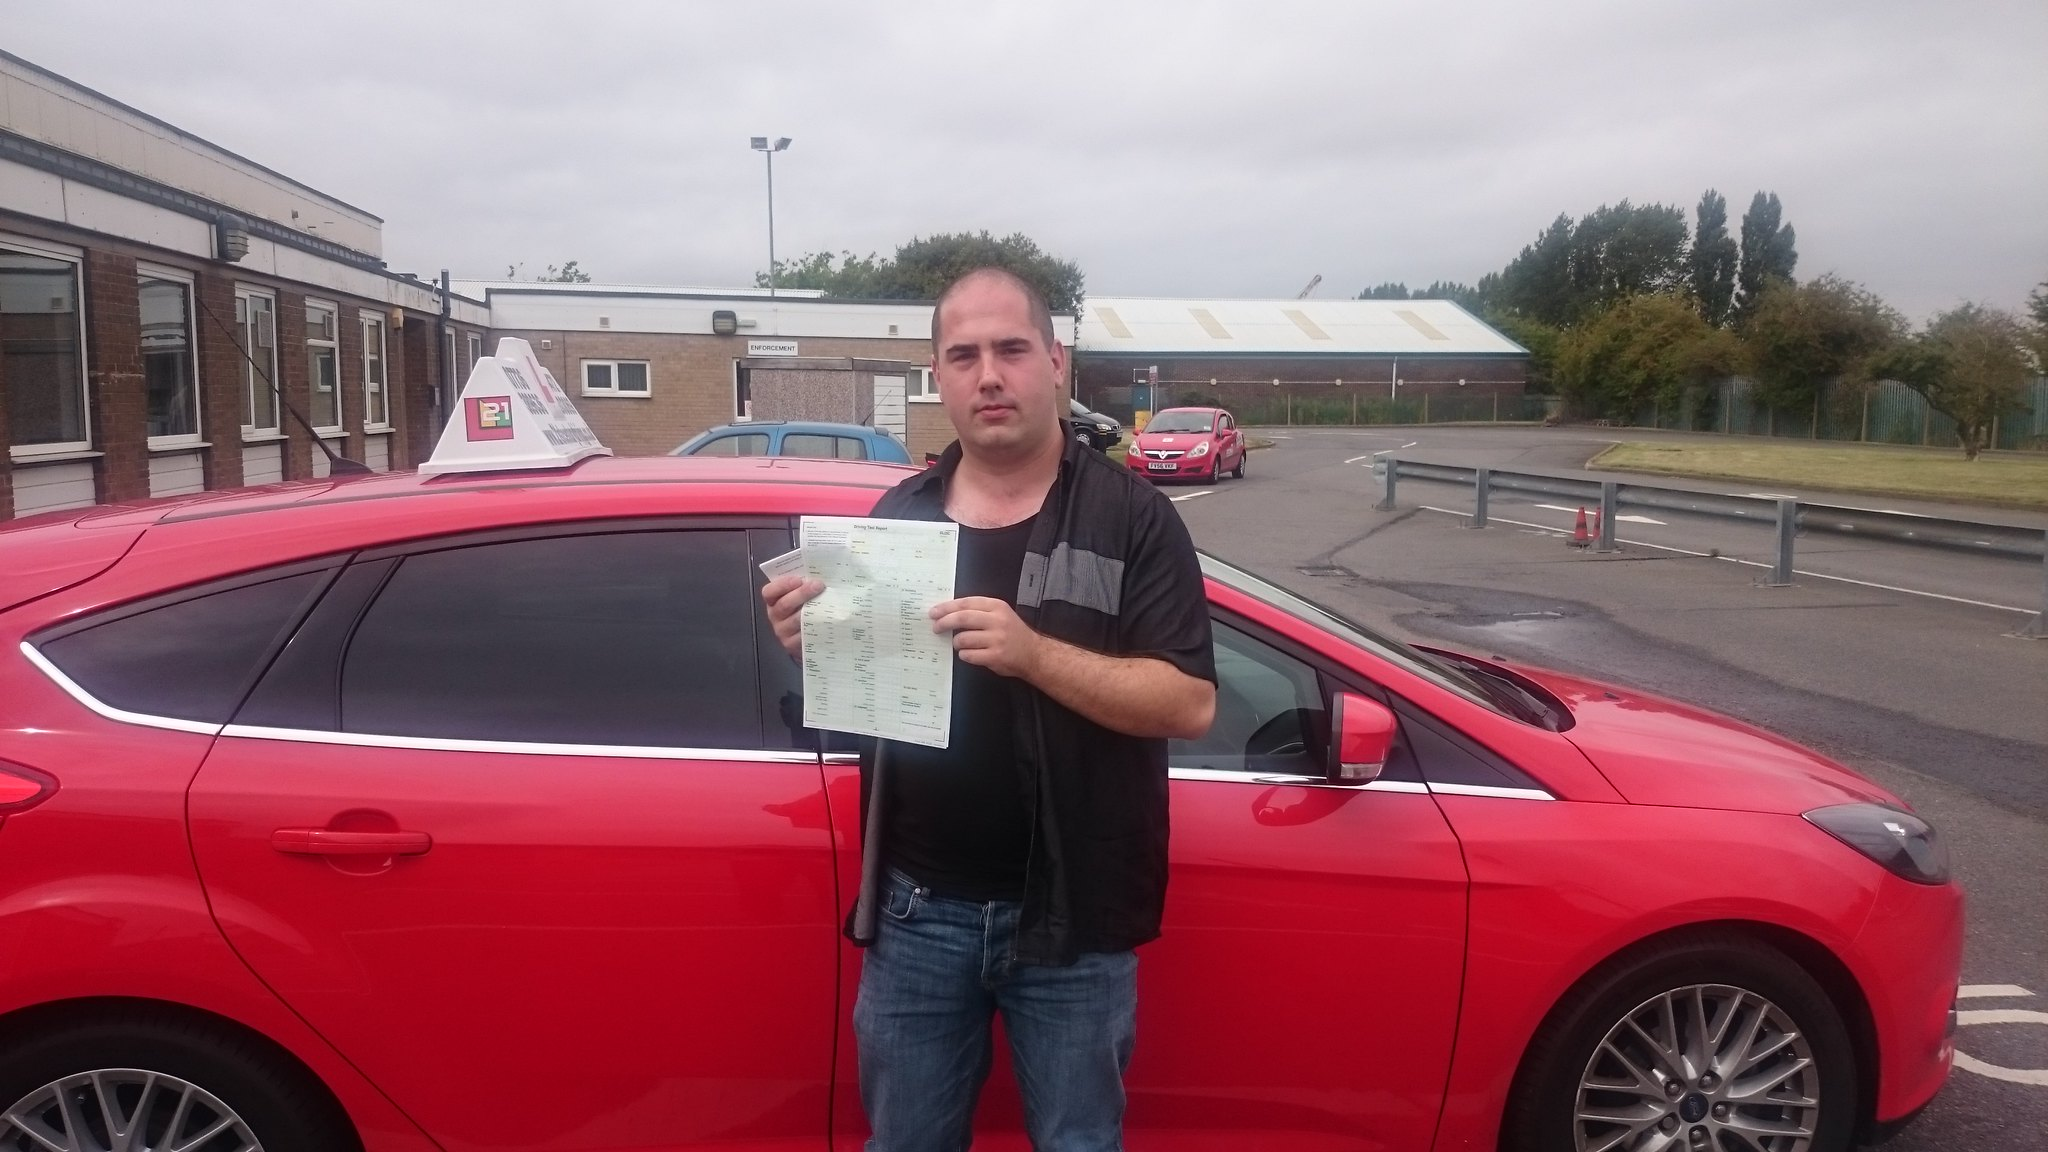 Dale Howson passes driving test in grimsby with 21st Century Driving